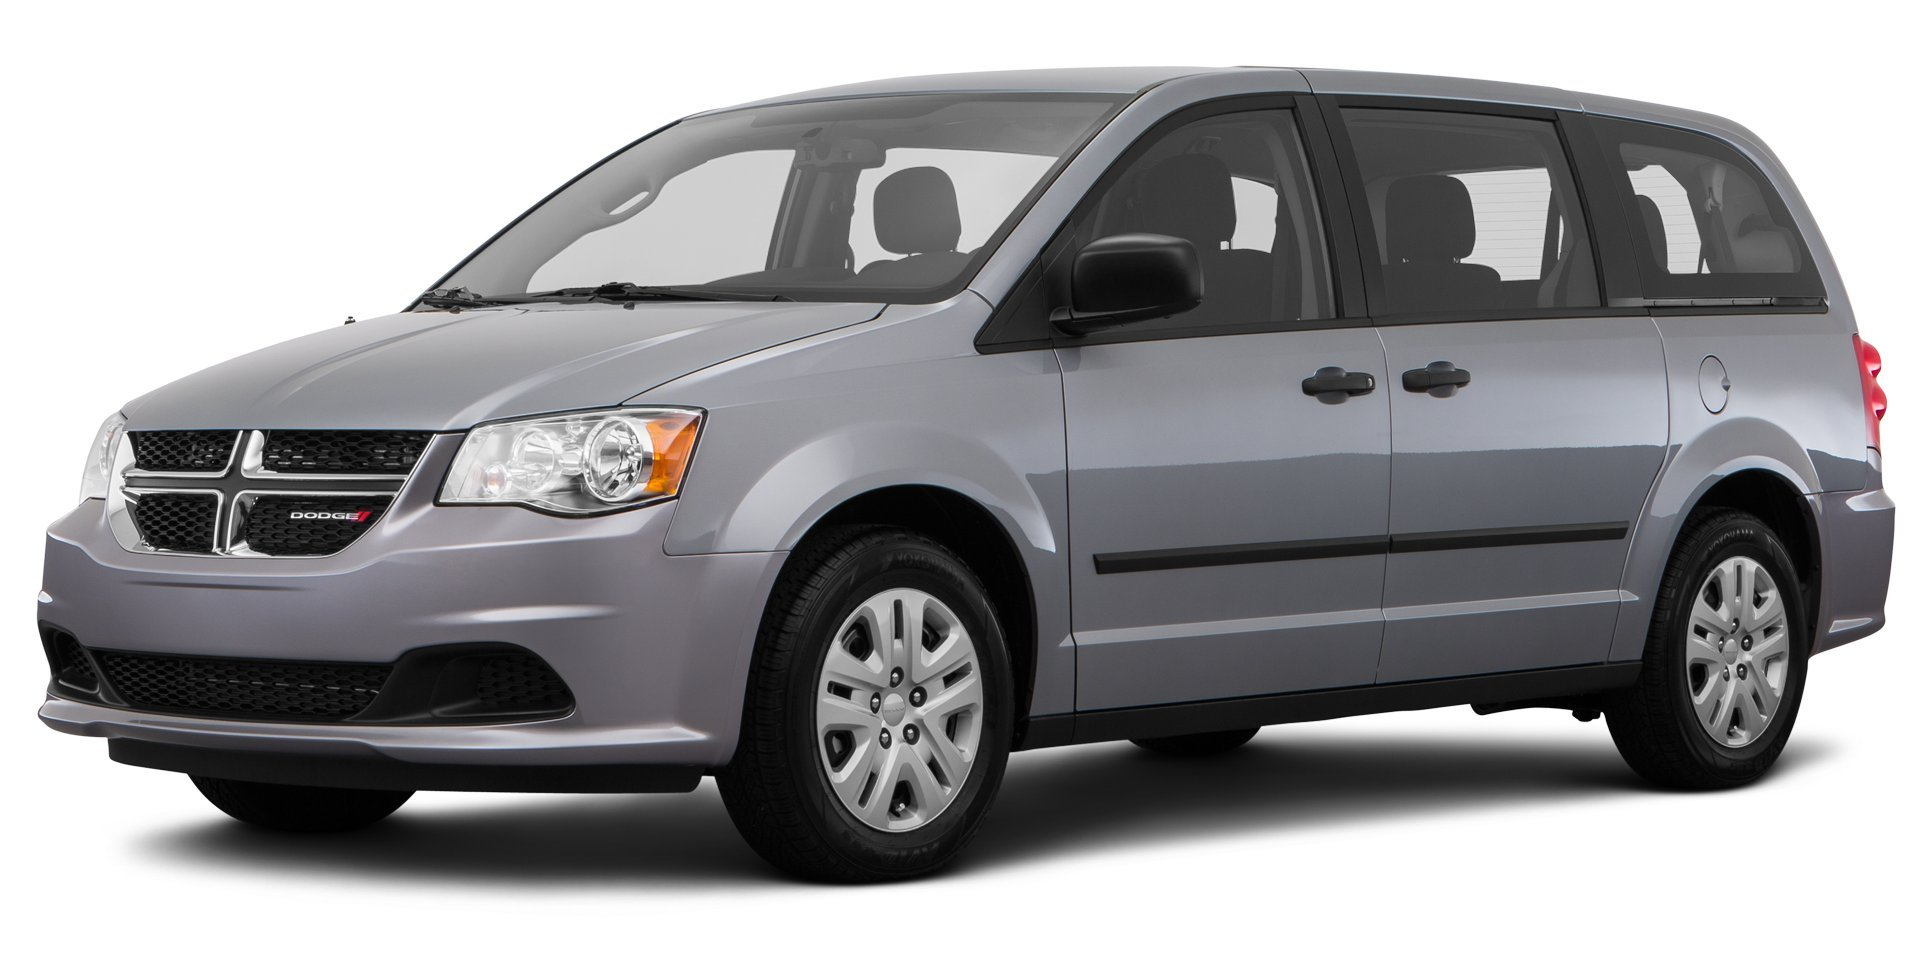 2015 dodge grand caravan reviews images and specs vehicles. Black Bedroom Furniture Sets. Home Design Ideas